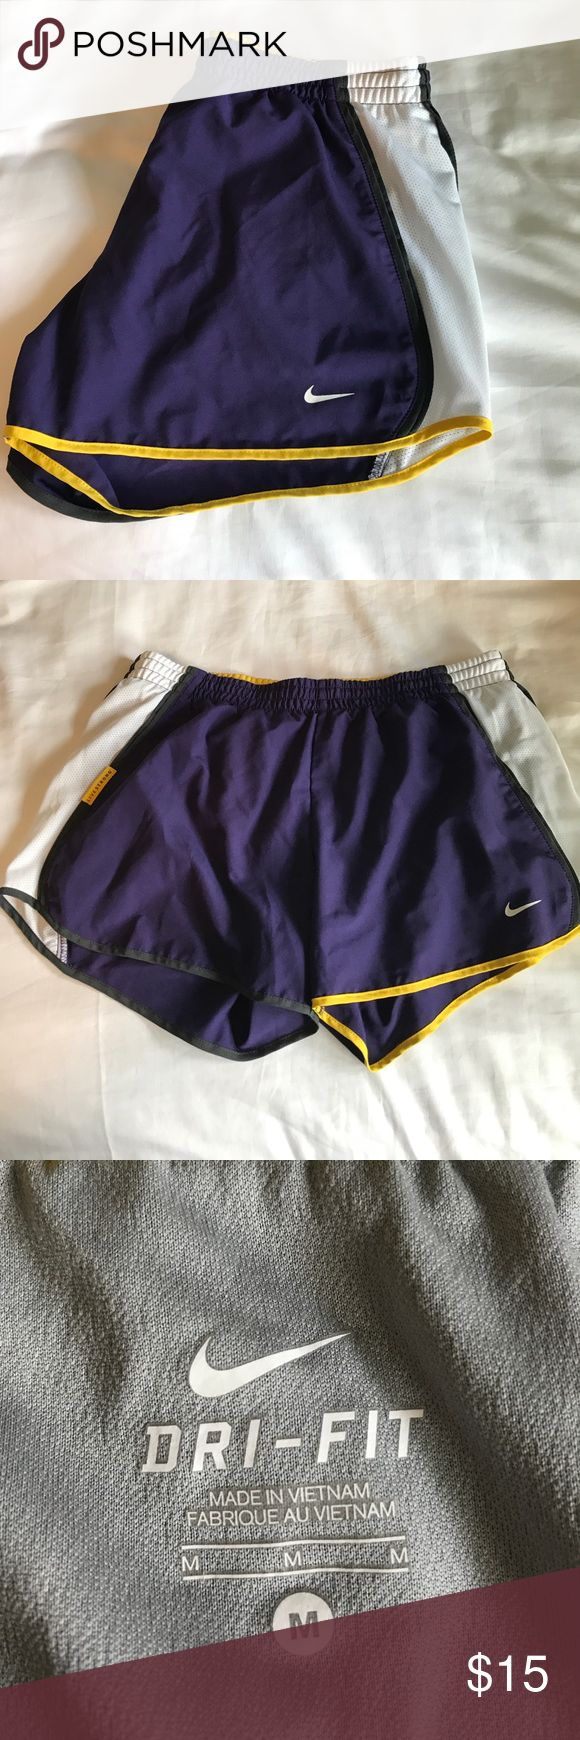 Nike Livestrong Dr Fit shorts (purple &a yellow) Size medium Nike Livestrong Dri Fit running shorts that are barely worn. Colors are purple, yellow (not neon), grey, white and black. No trades. Reasonable offers considered. Nike Shorts